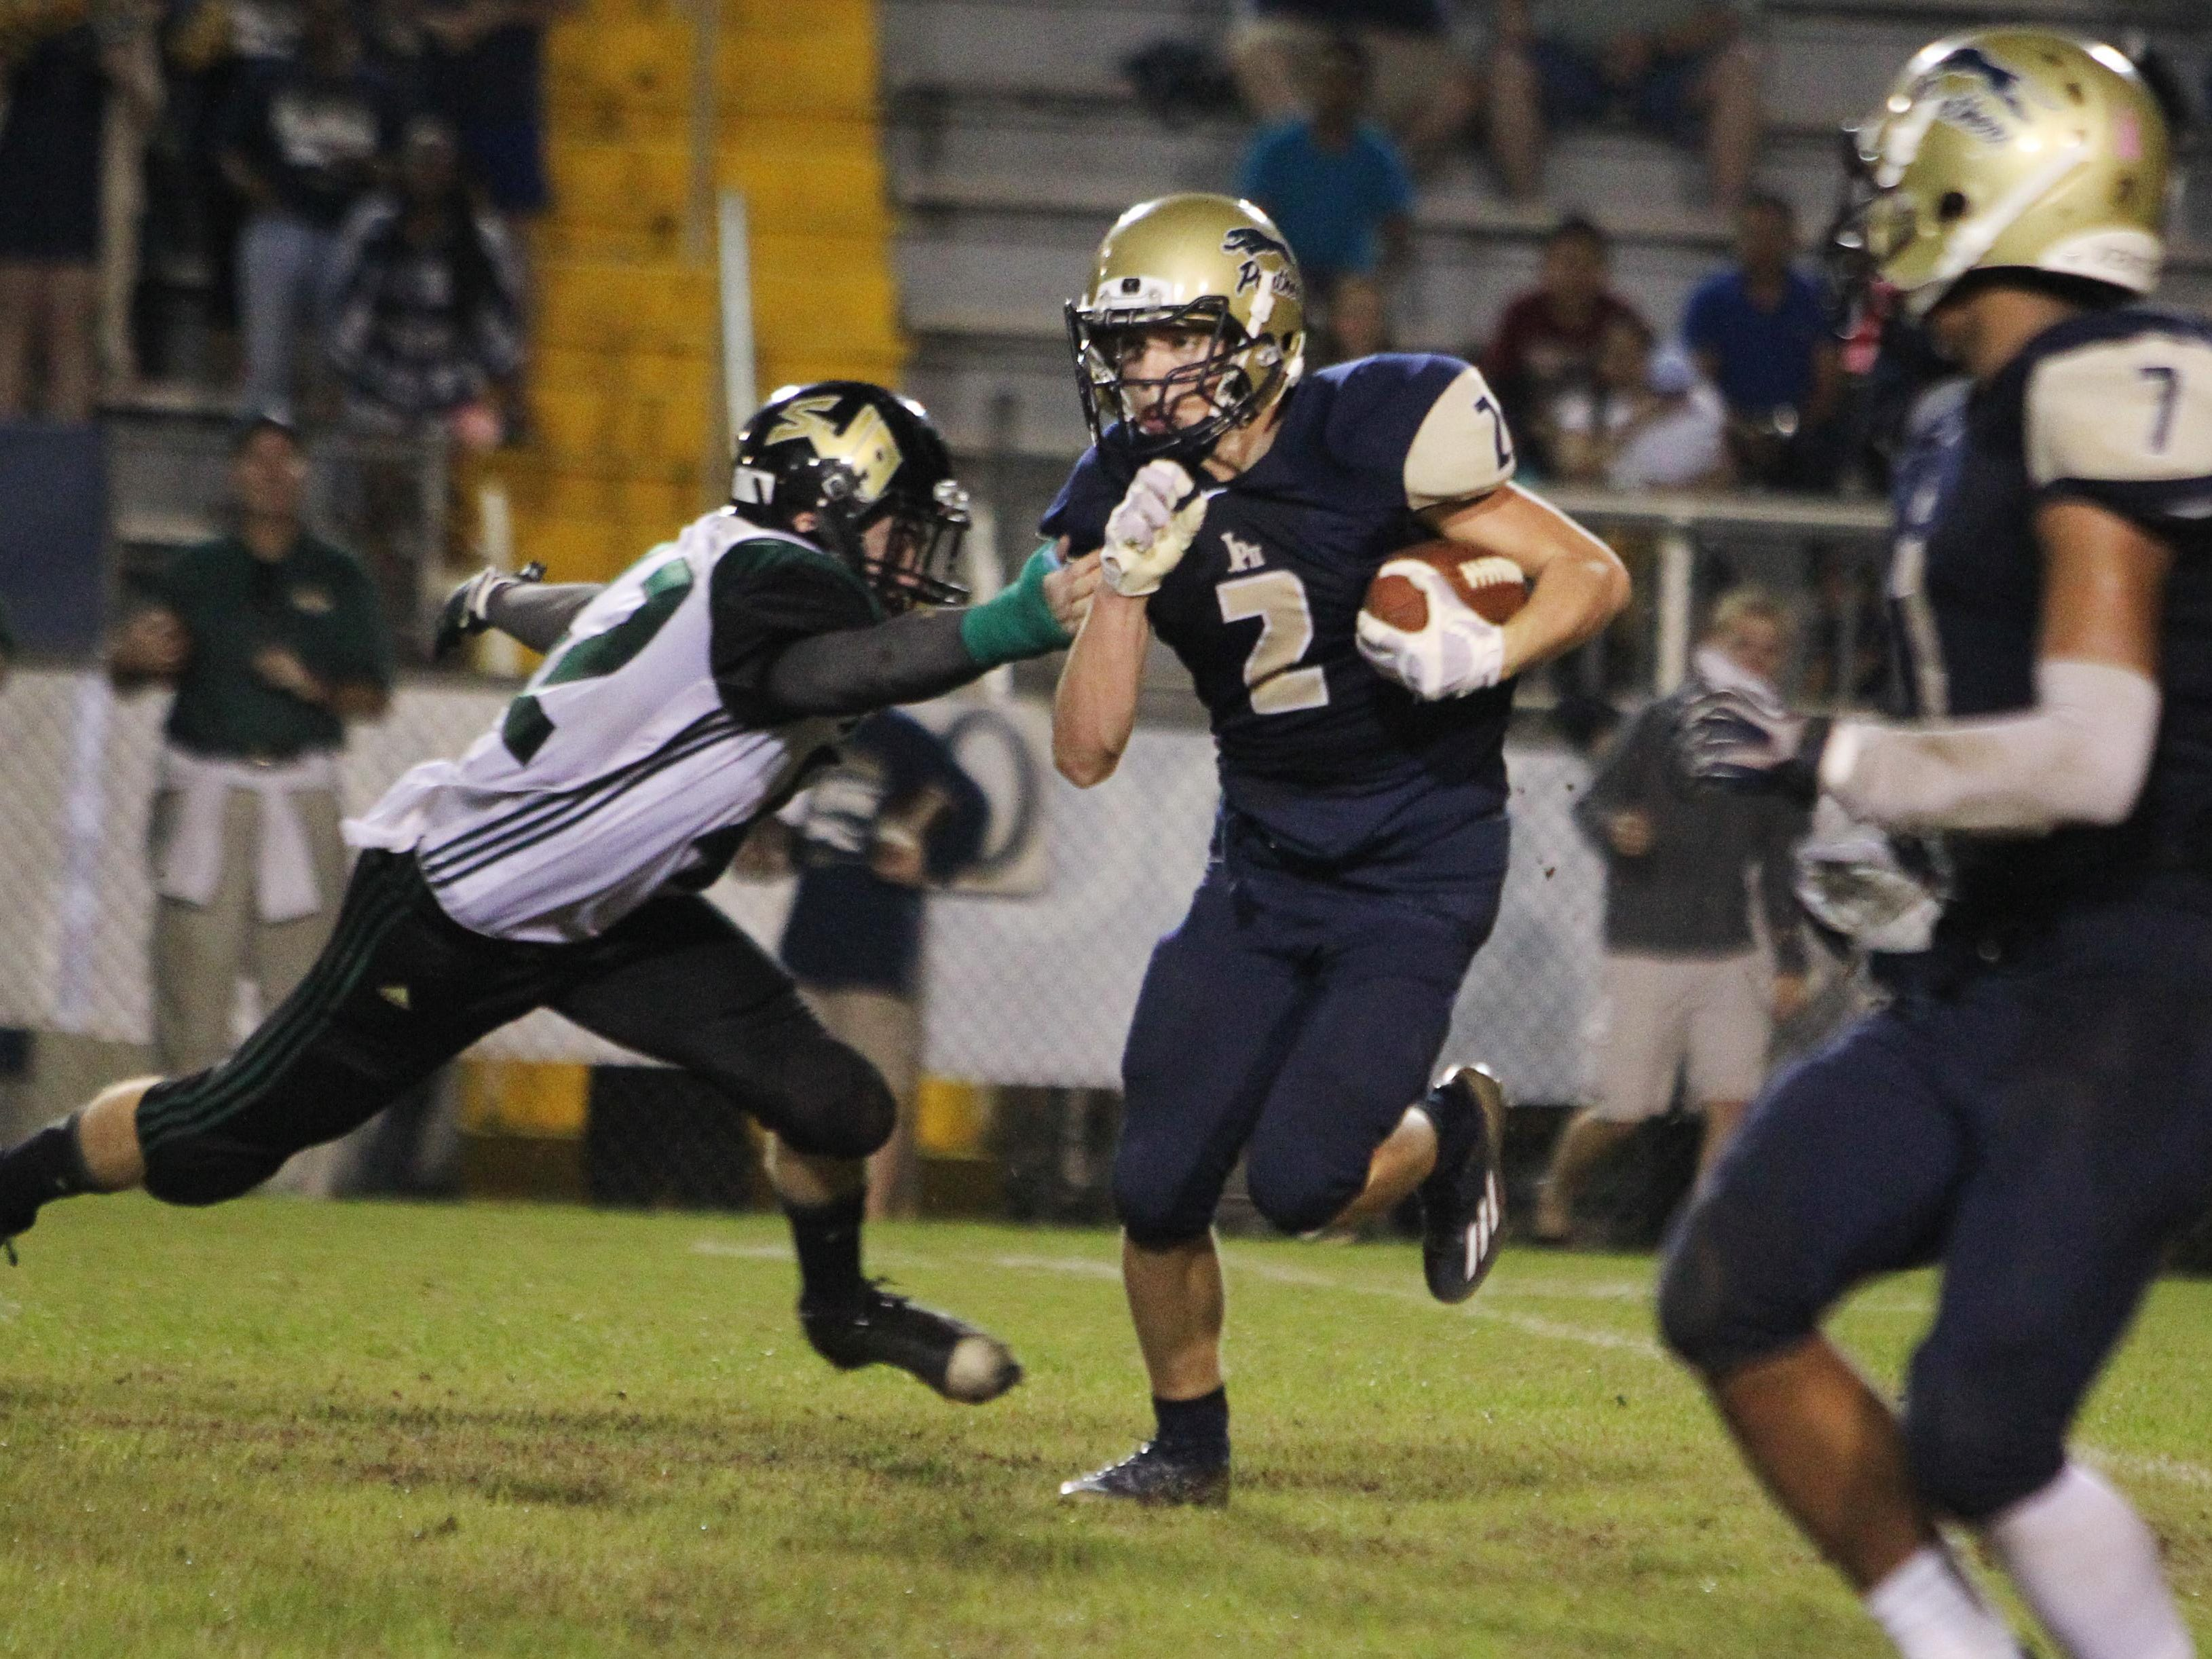 John Paul II's Taylor Janicki evades a defender on a punt return in the championship game of the North Florida Football Conference at Gene Cox Stadium.